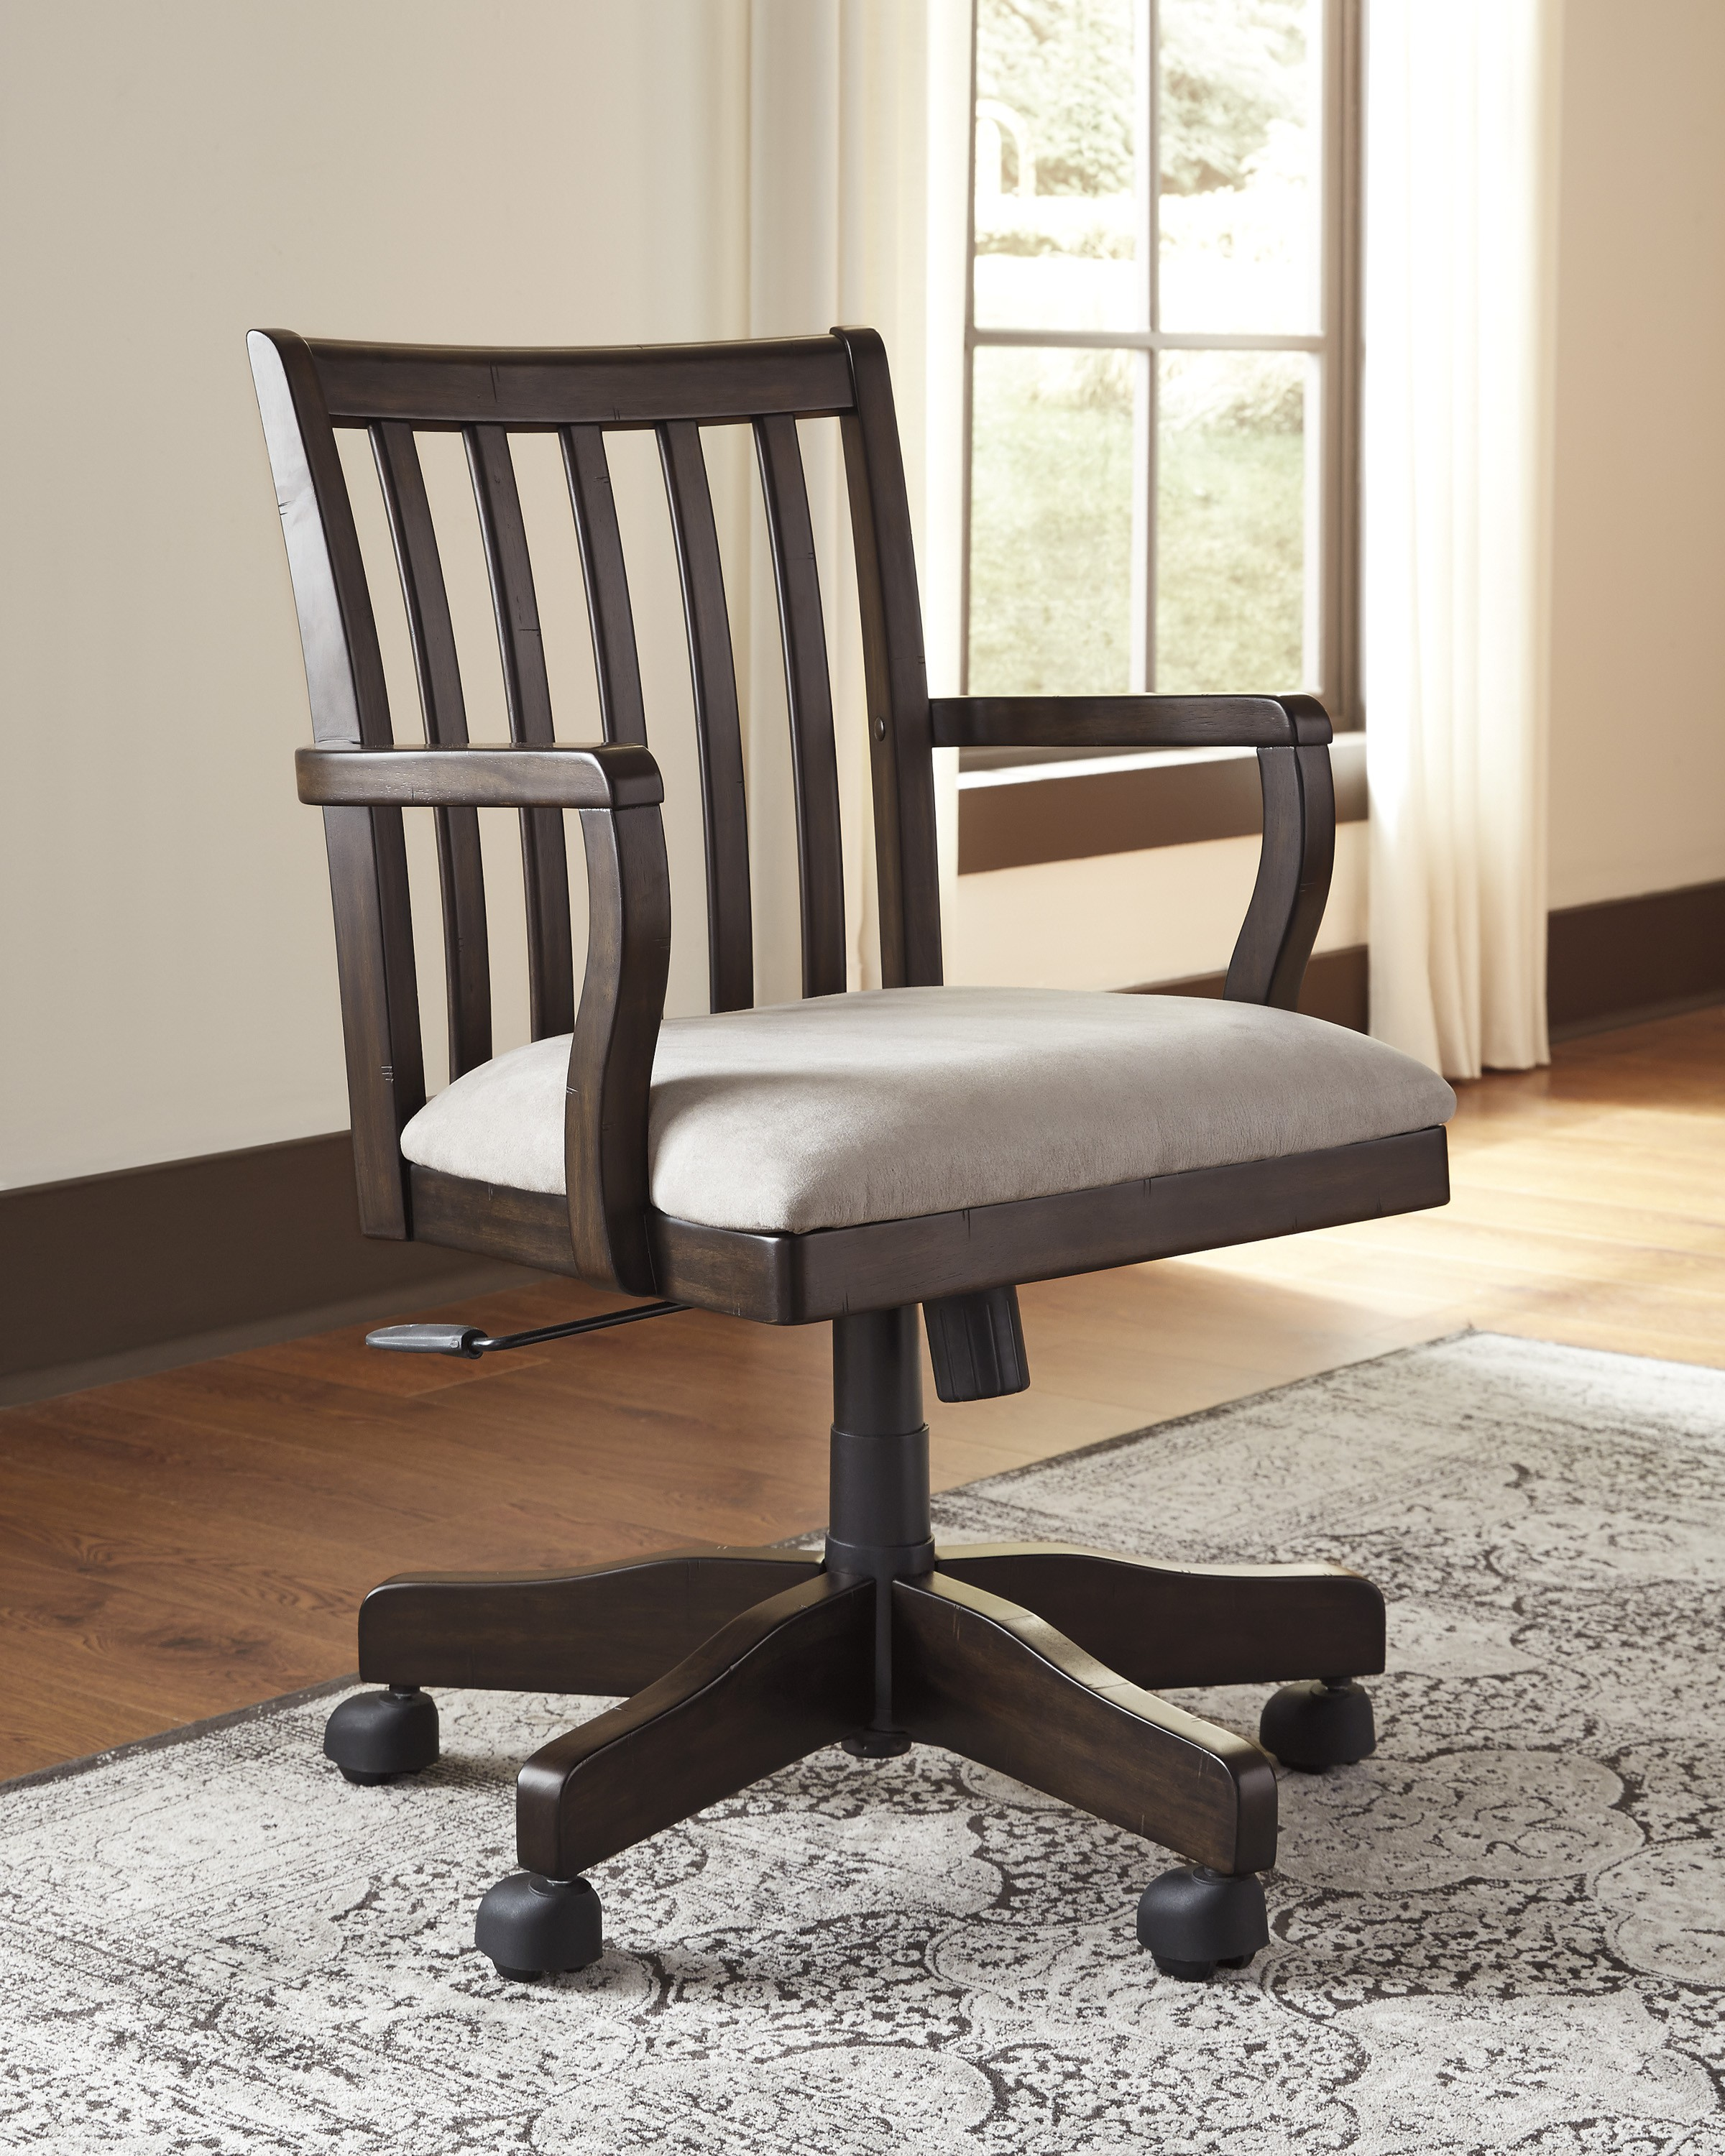 swivel chair brown cover hire harlow townser light home office desk h636